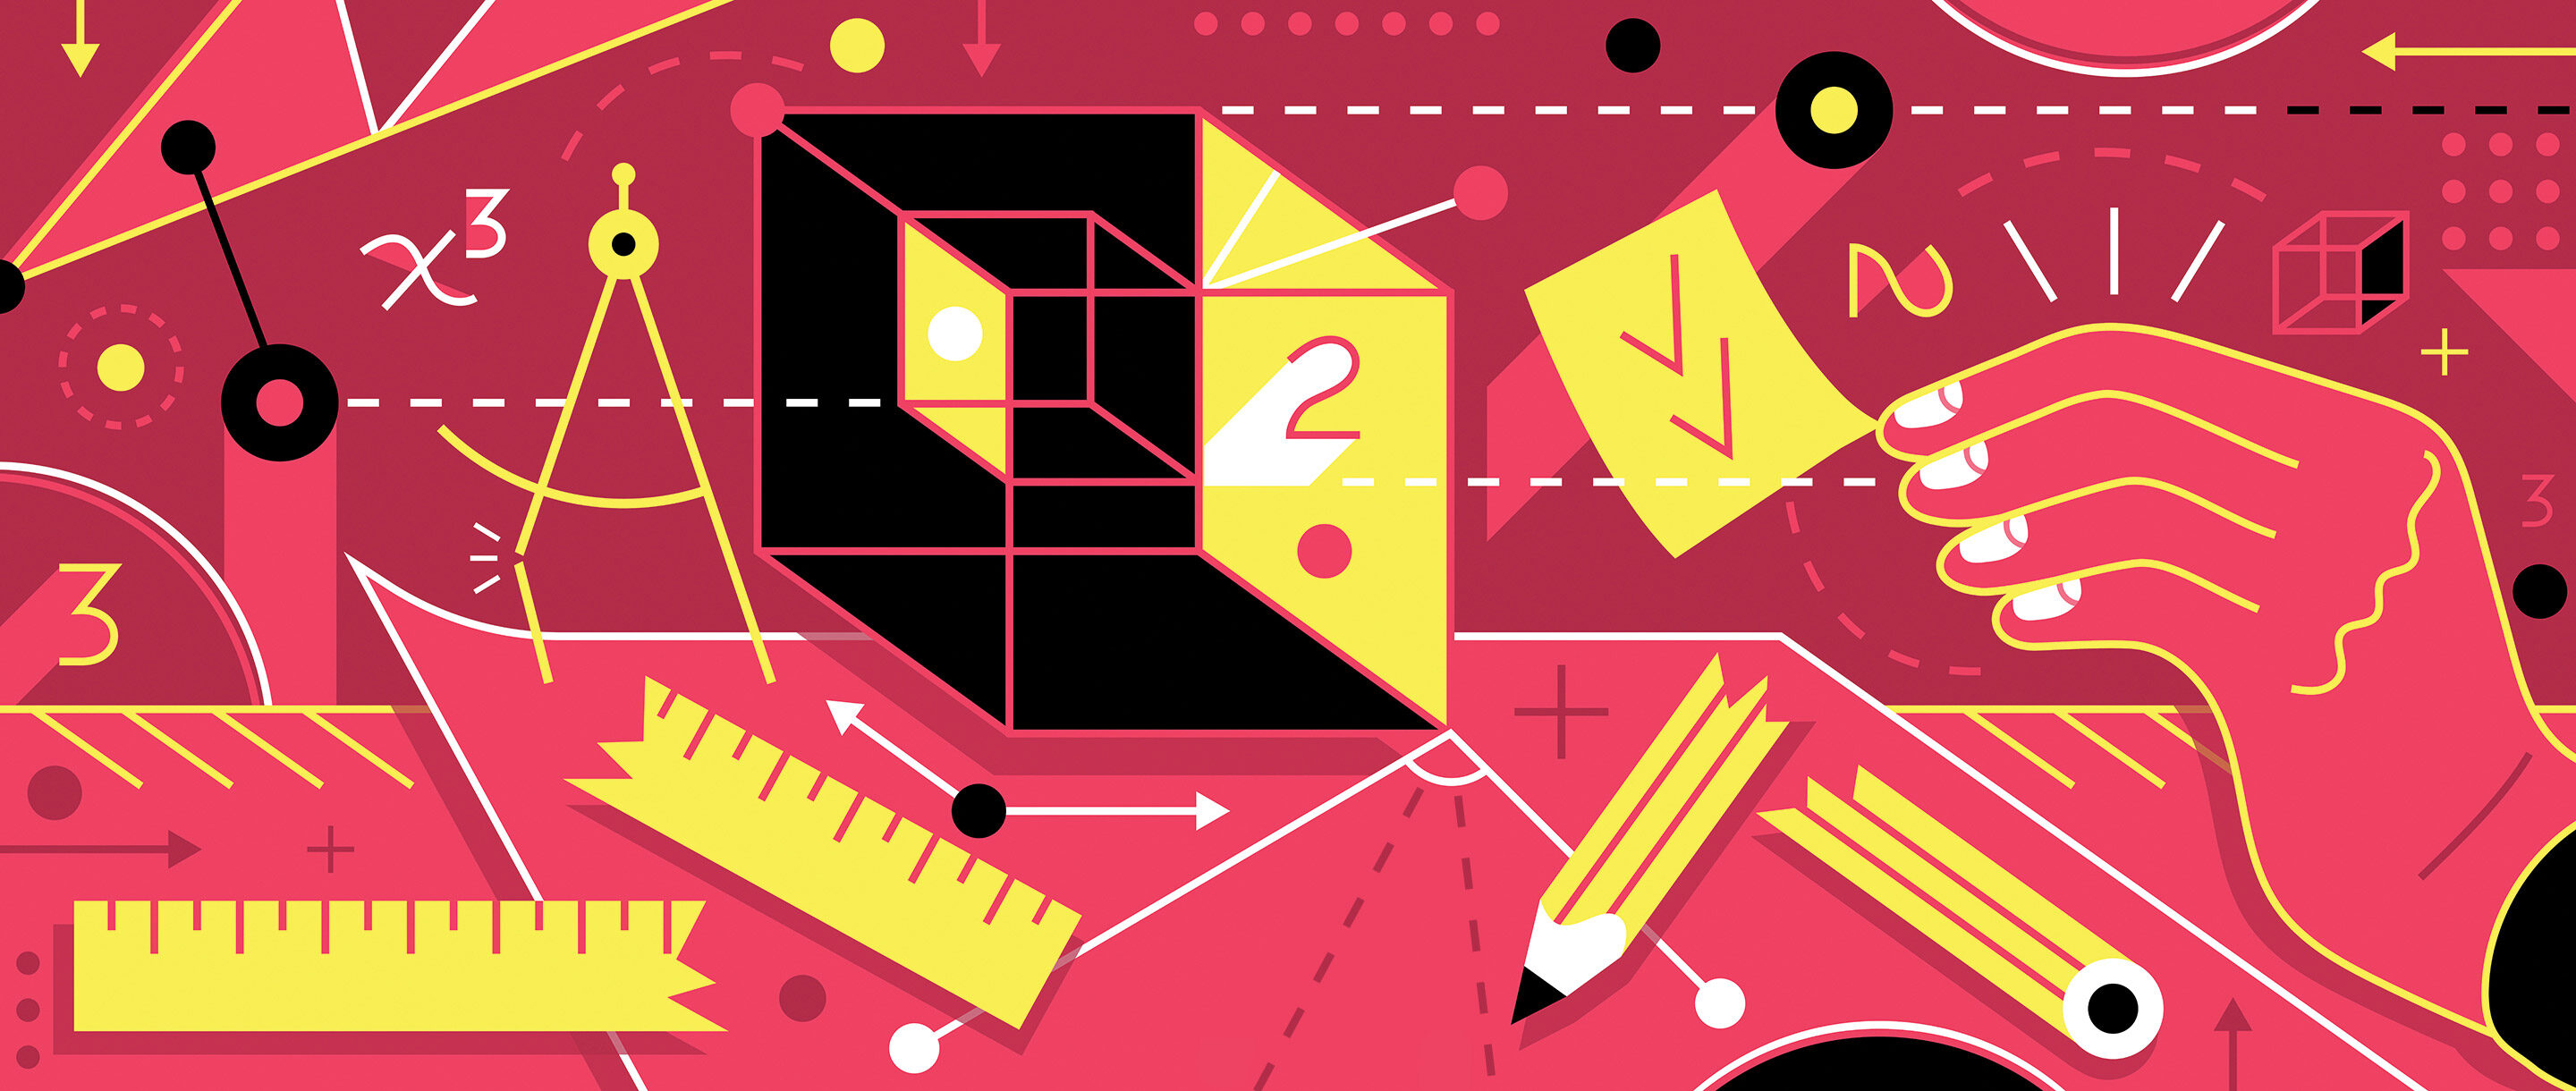 An abstract illustration showing broken tools, cubes, numbers and other abstract representations of impossible math